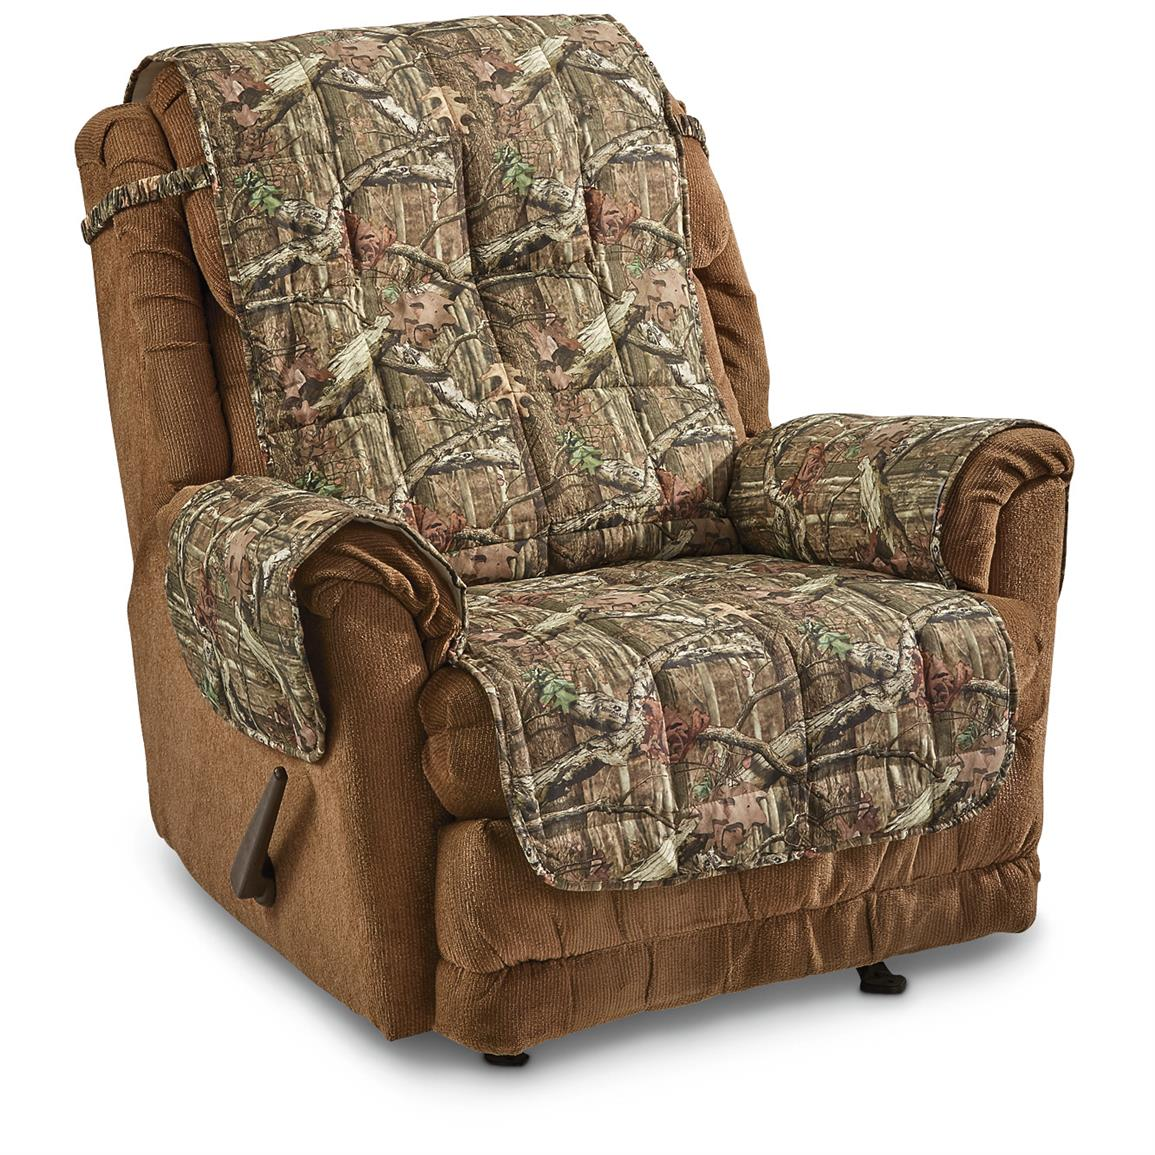 Details About New Universal Mossy Oak Camo Furniture Covers For Chair Sofa Recliner Loveseat